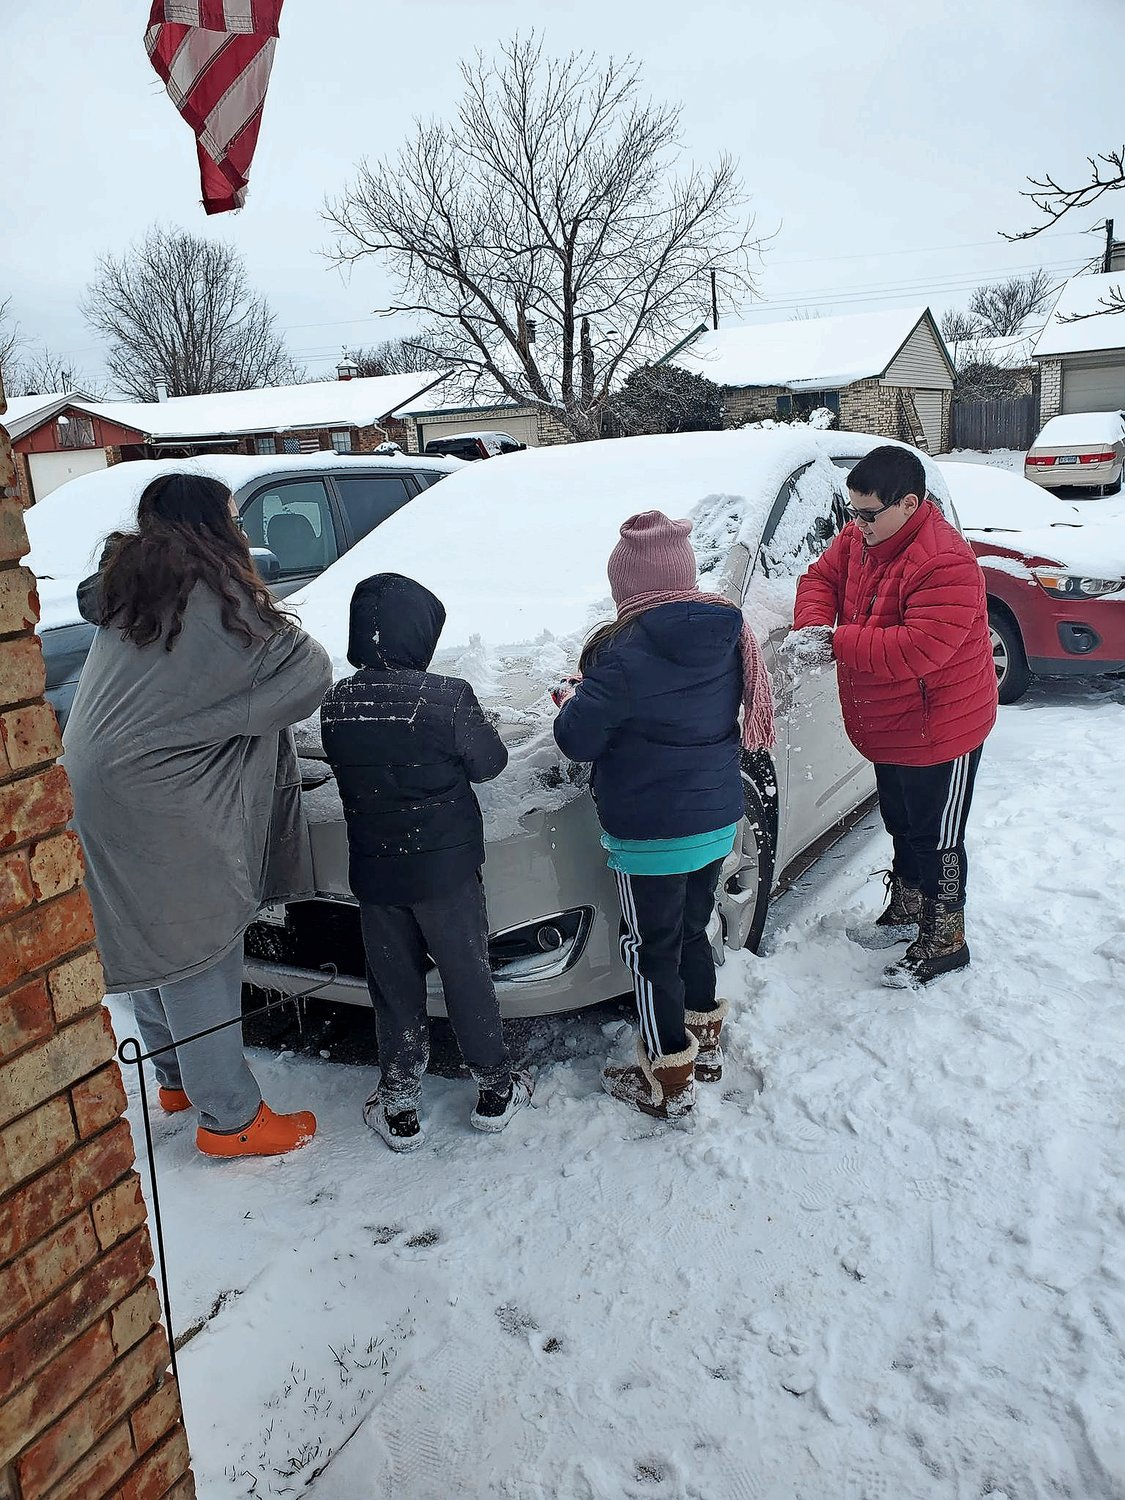 The Assa family cleared snow from their car after the storm on Presidents Day weekend.